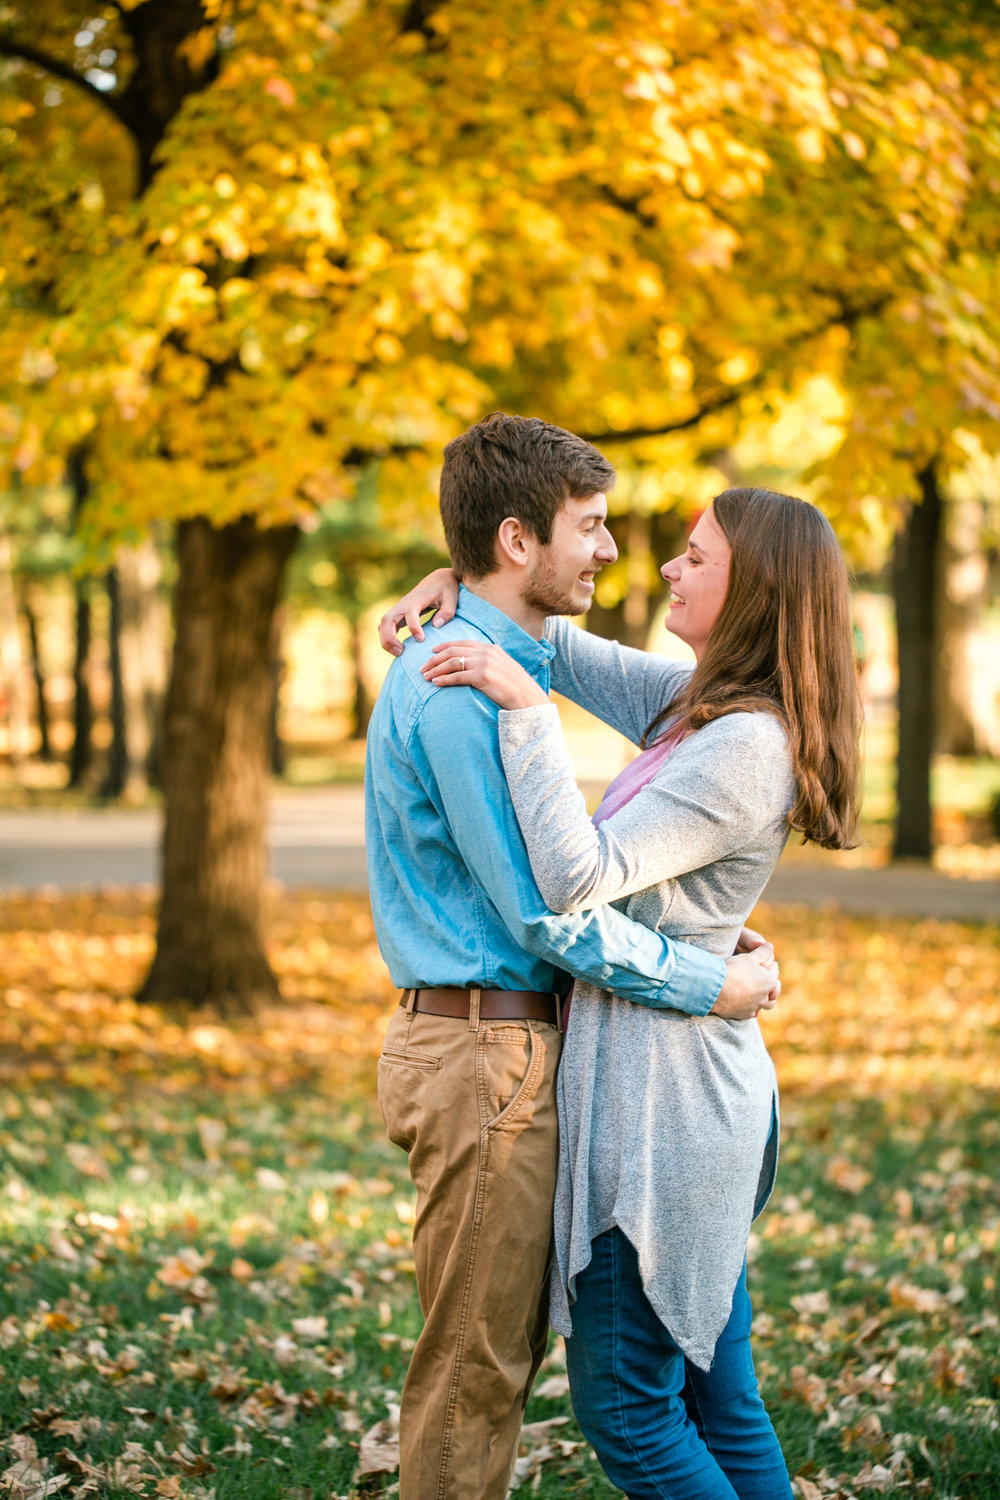 engagement photos in Iowa outfits what to wear iowa city